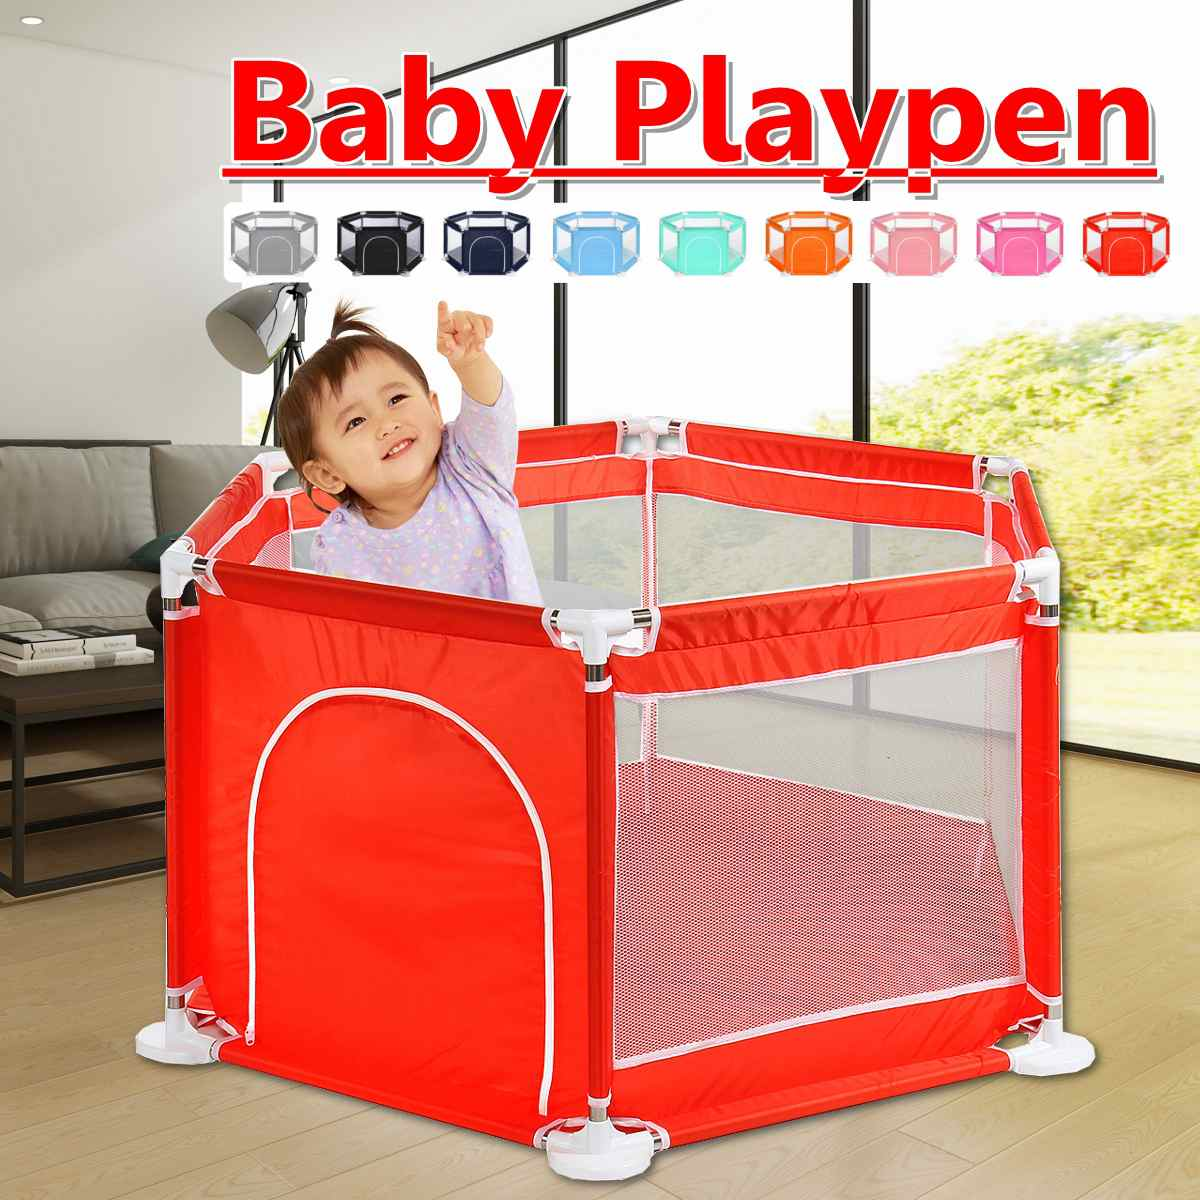 Playpen For Children 60*16*18cm Playpen Pool Balls Baby Playpen Ball Pool For Baby Fence Kids Tent Baby Tent Ball Pool